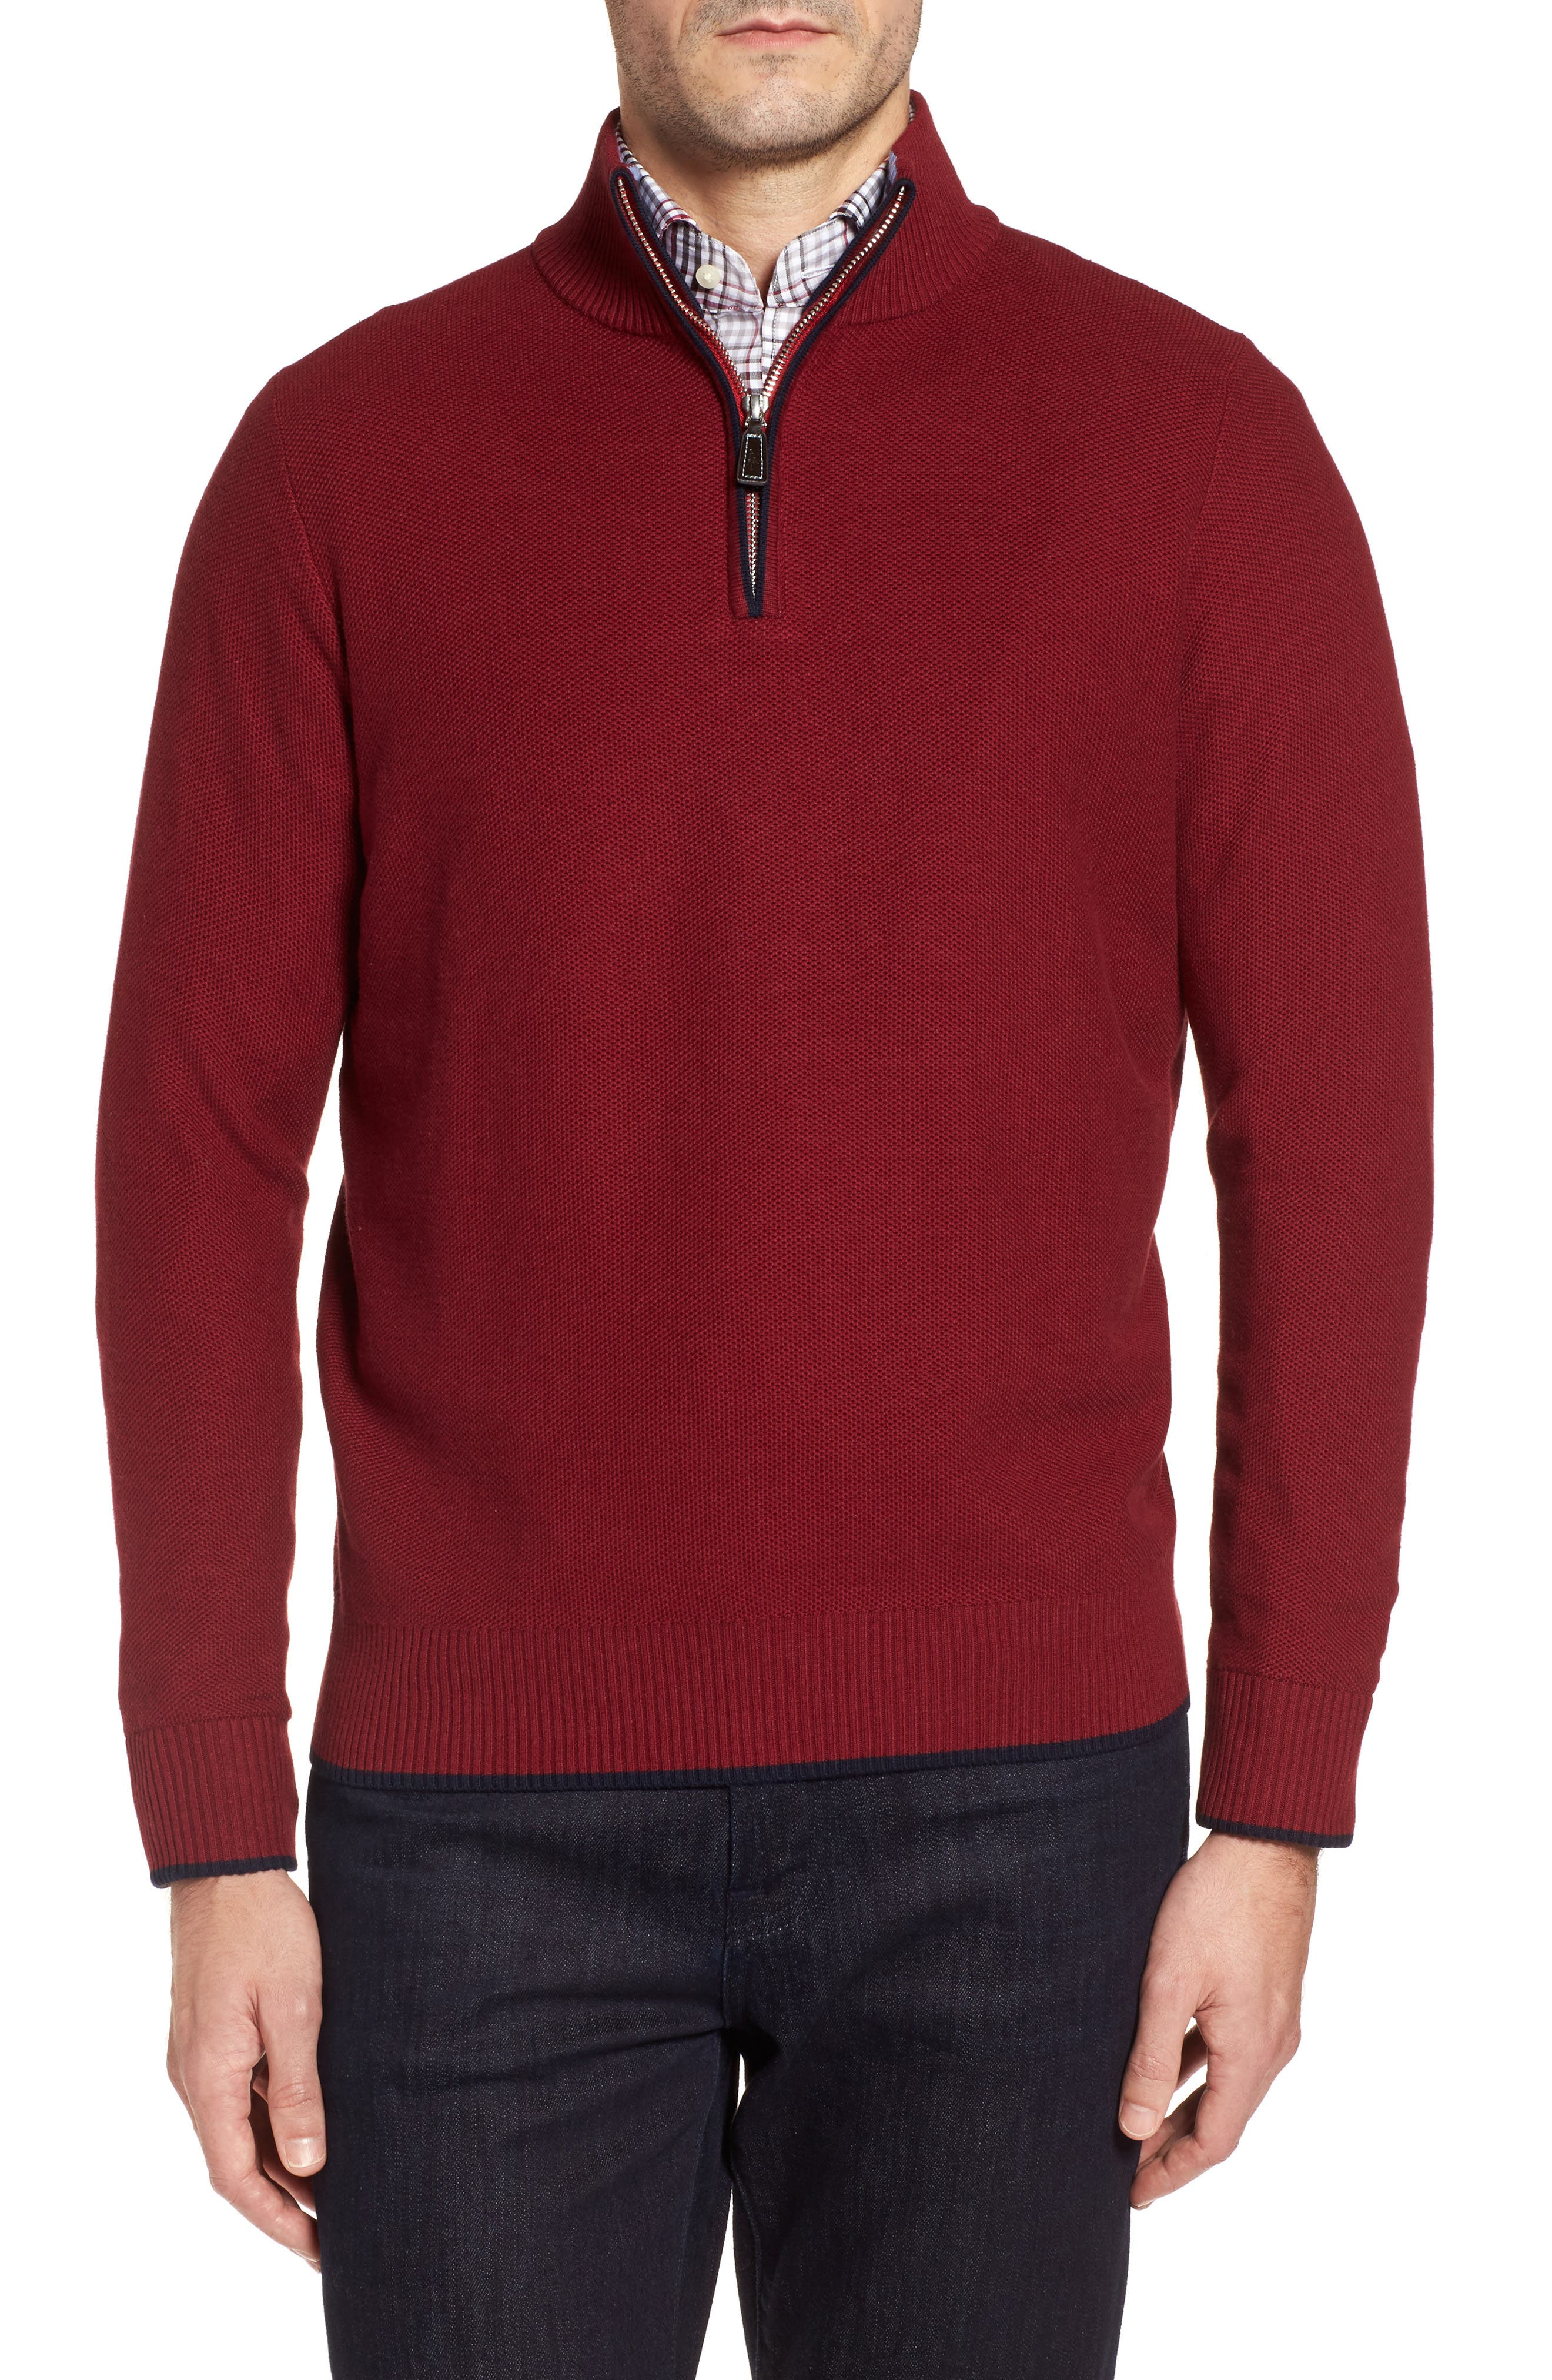 TailorByrd Prien Tipped Quarter Zip Sweater